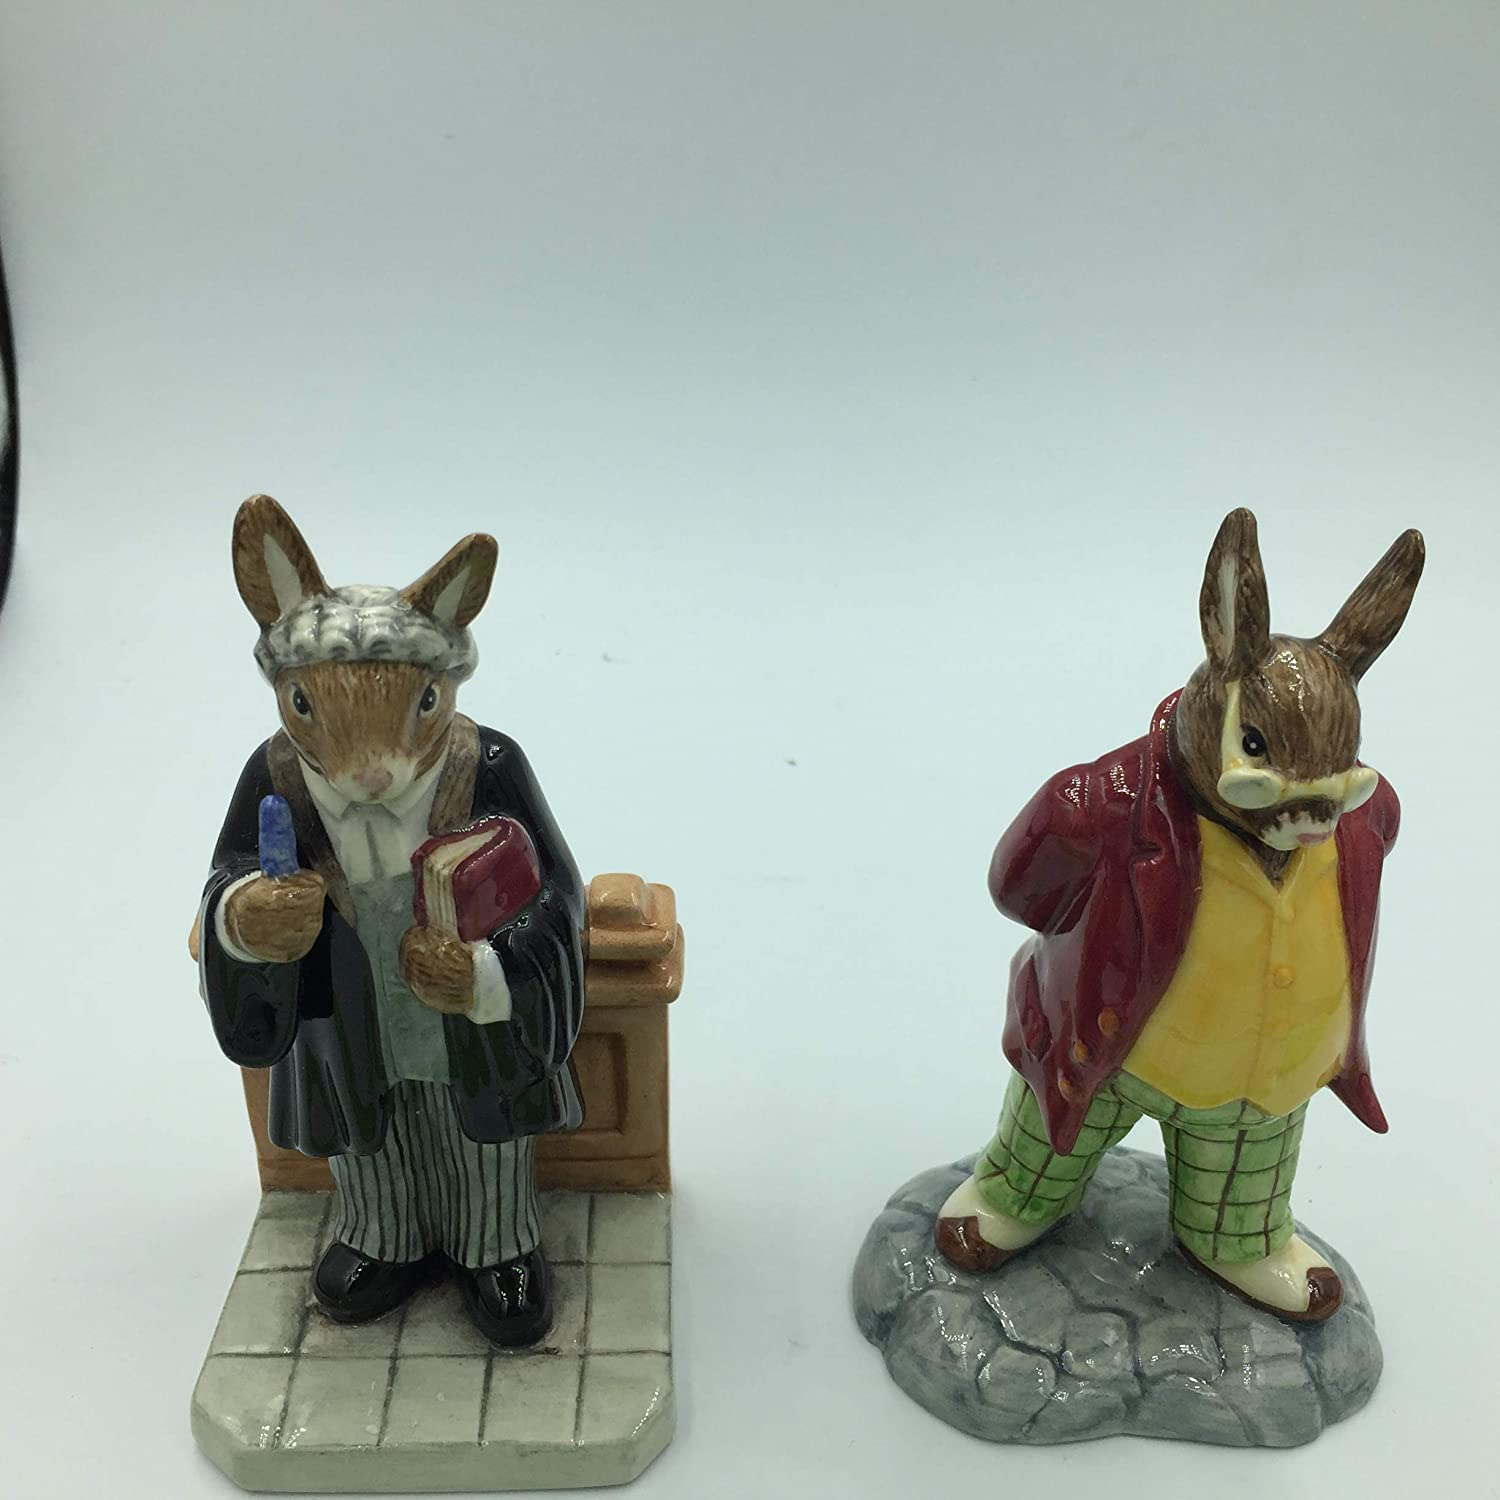 Beautiful New arrival Royal Doulton Bunnykins Max 48% OFF Father Barrister Doult